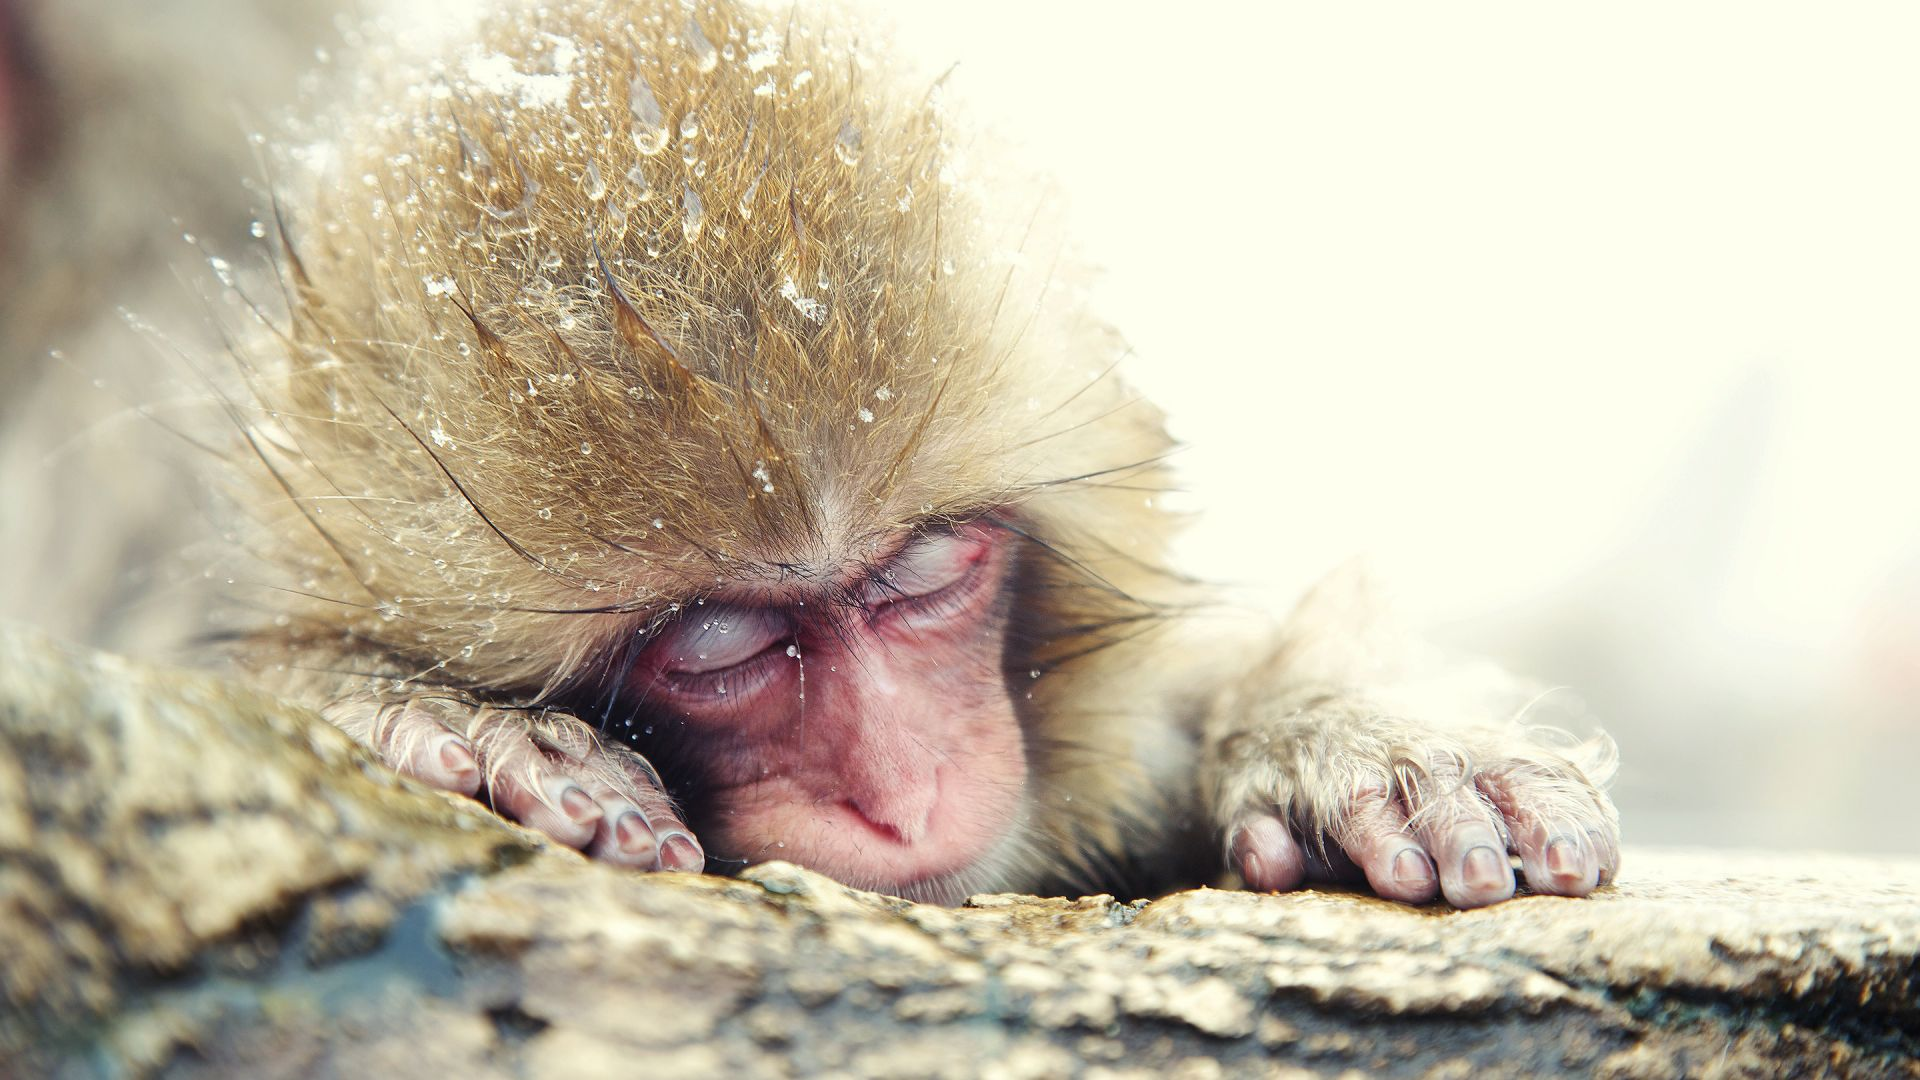 Japanese macaque, monkey, cute animals (horizontal)